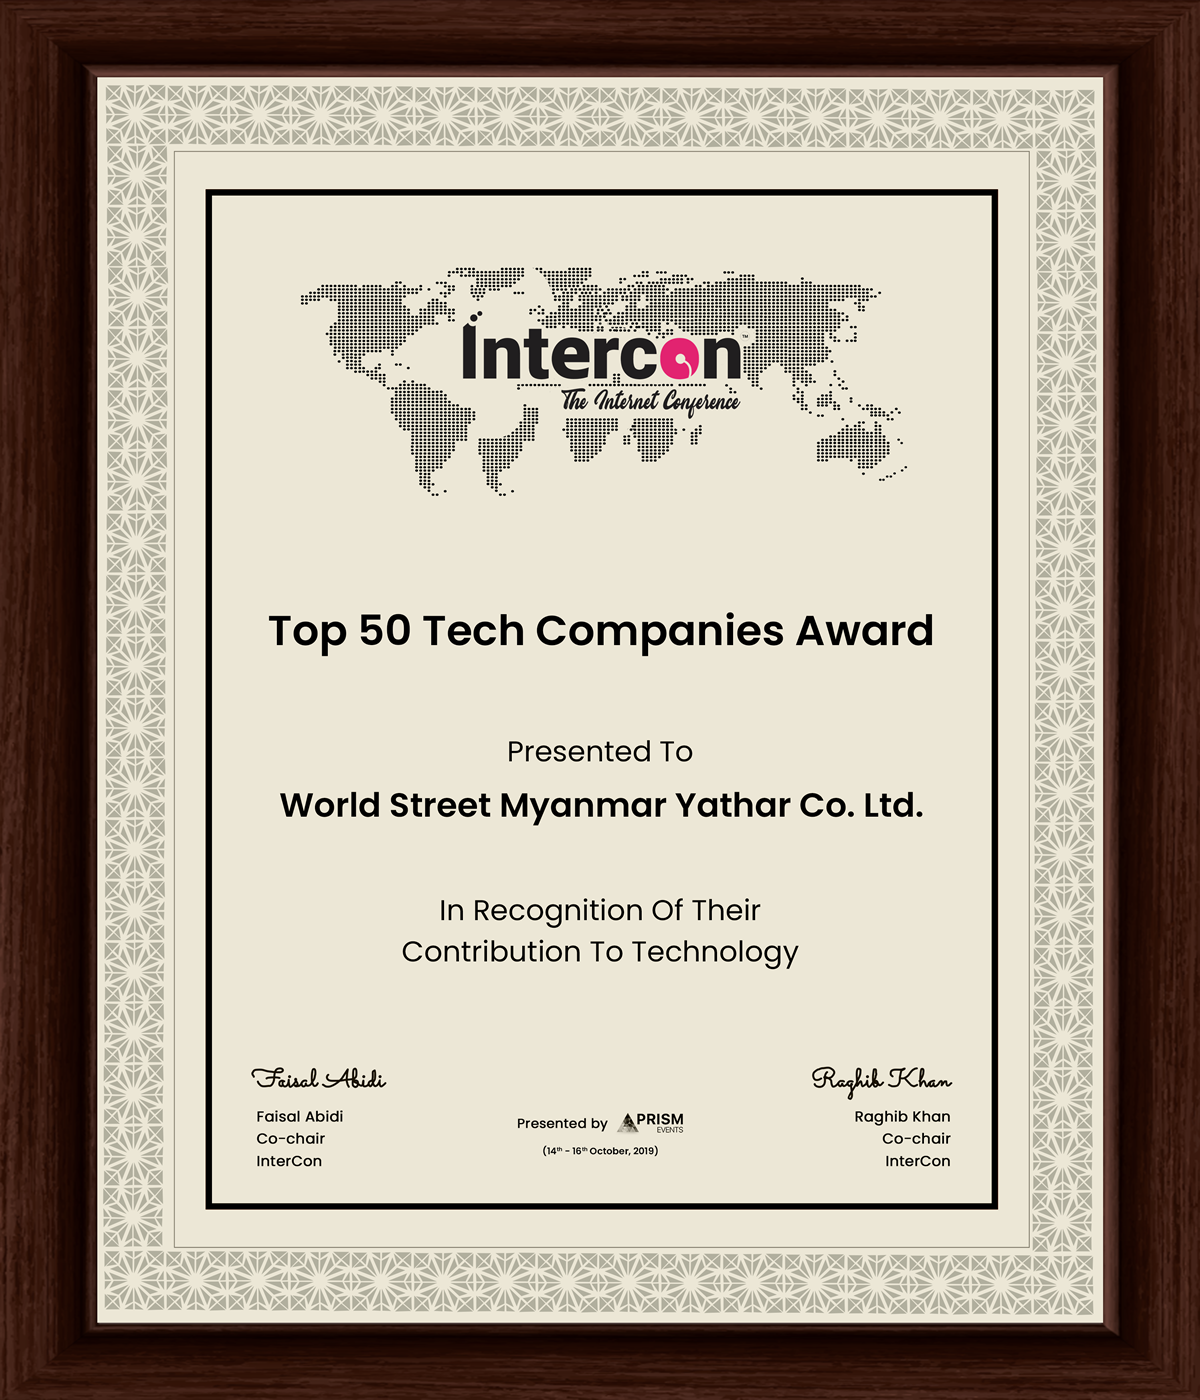 yathar wins Top 50 Tech Companies Award by InterCon